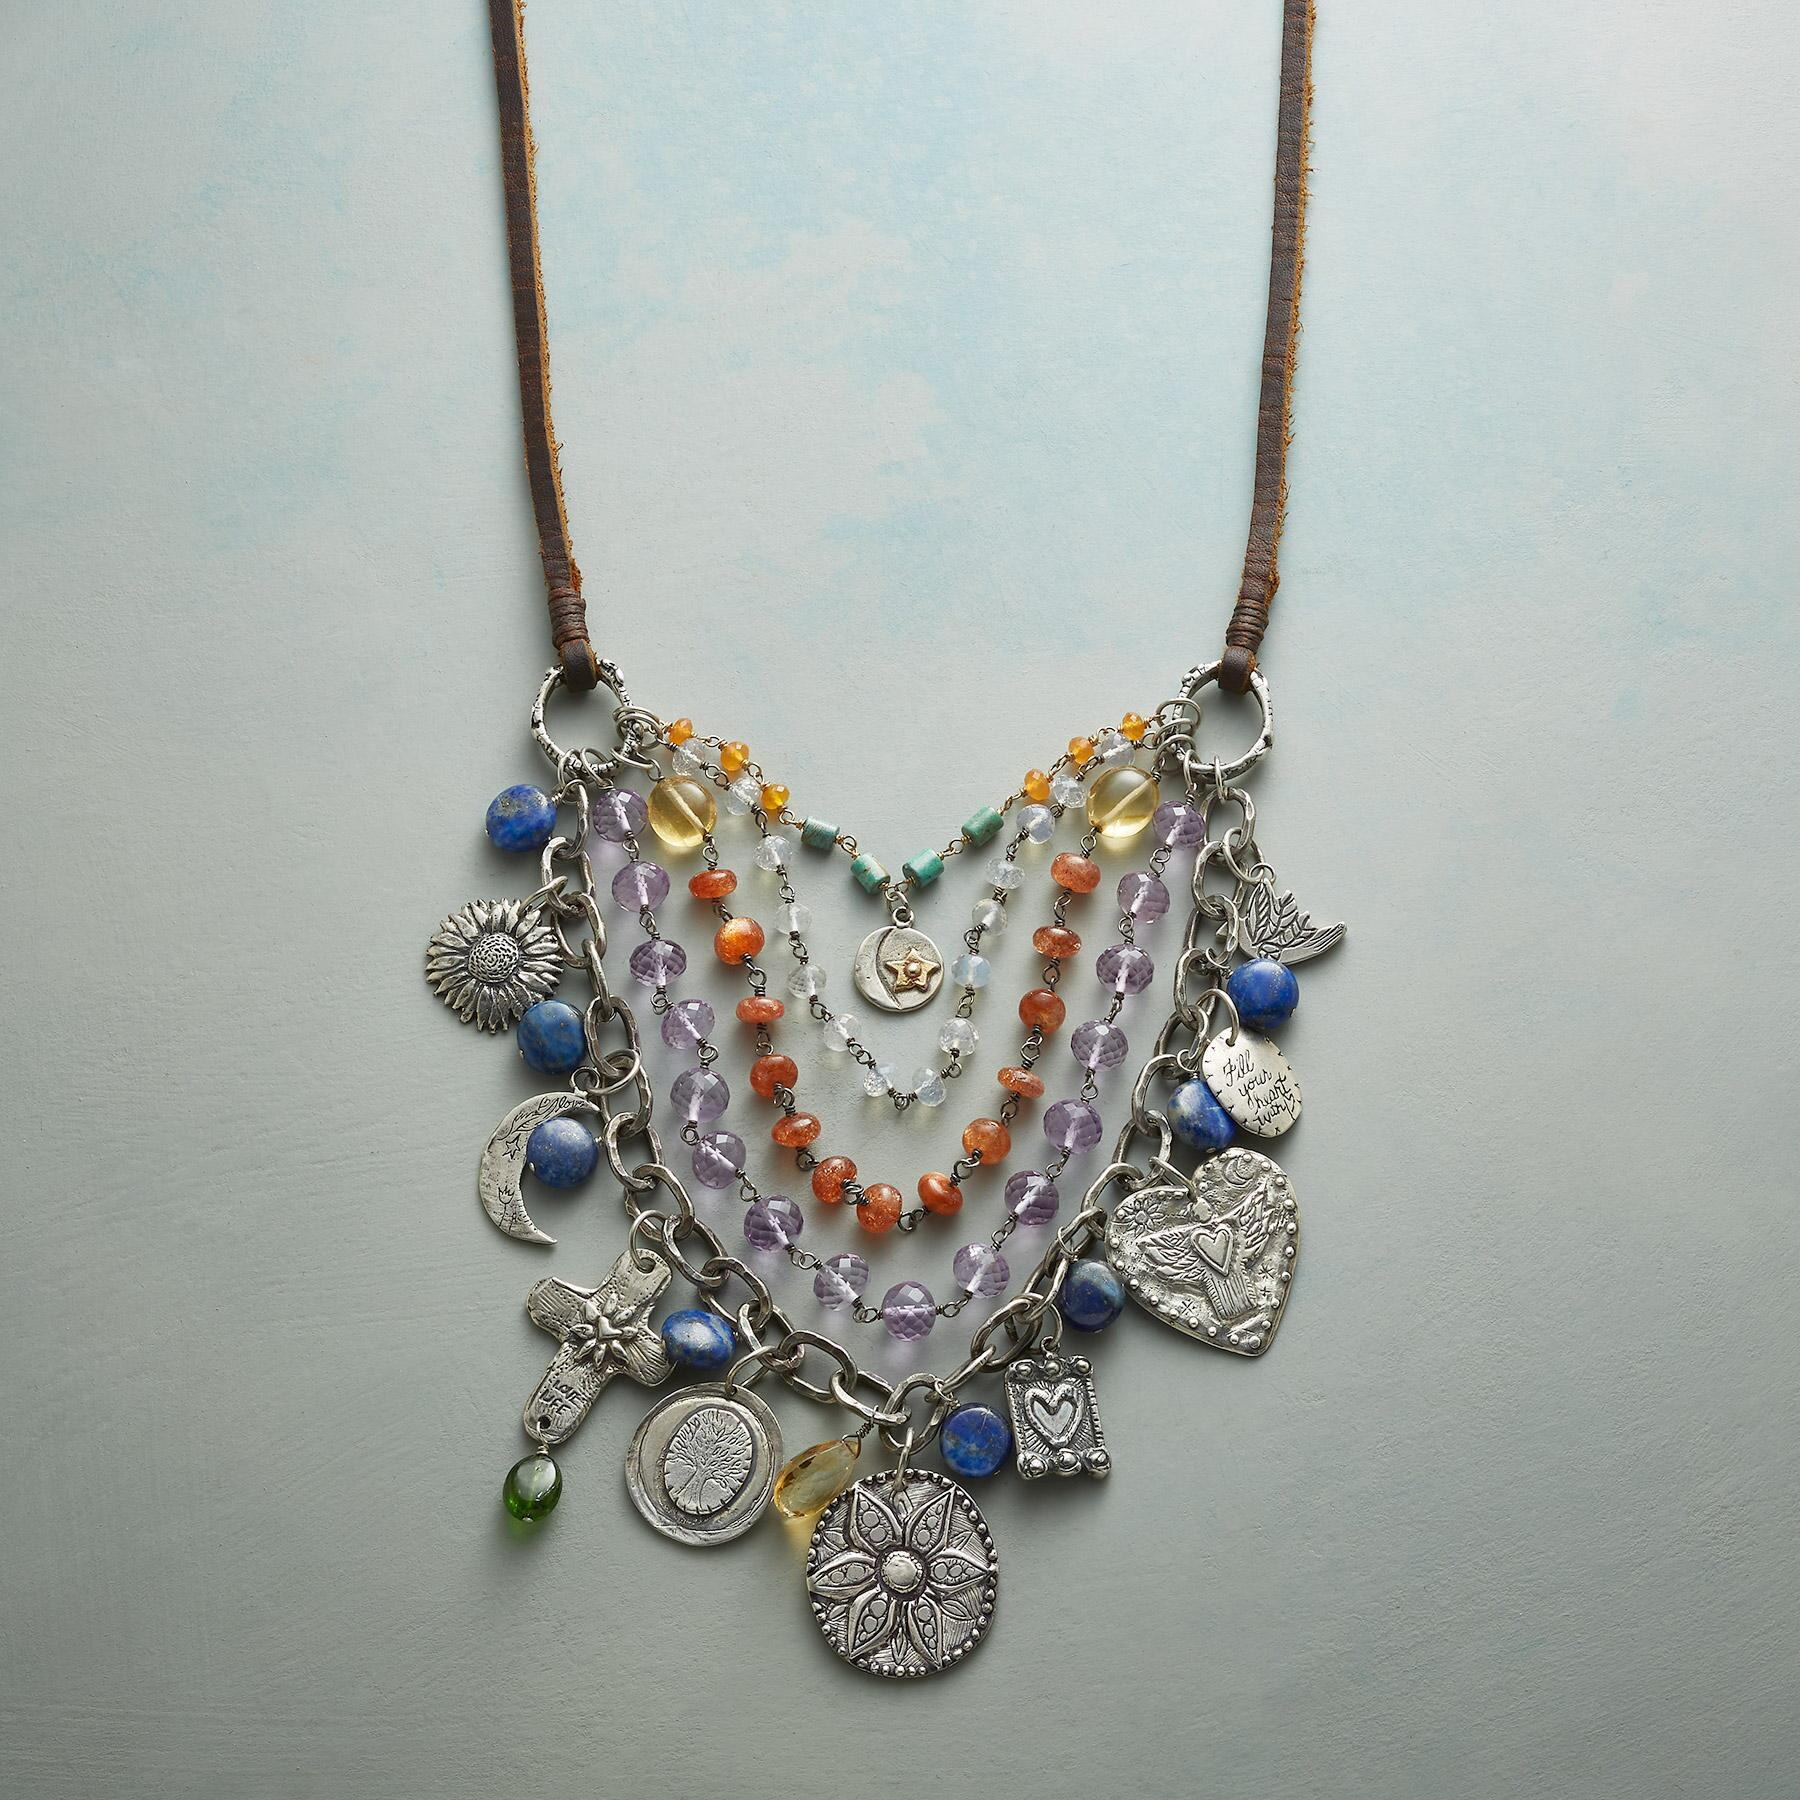 NEW DAY NECKLACE: View 1